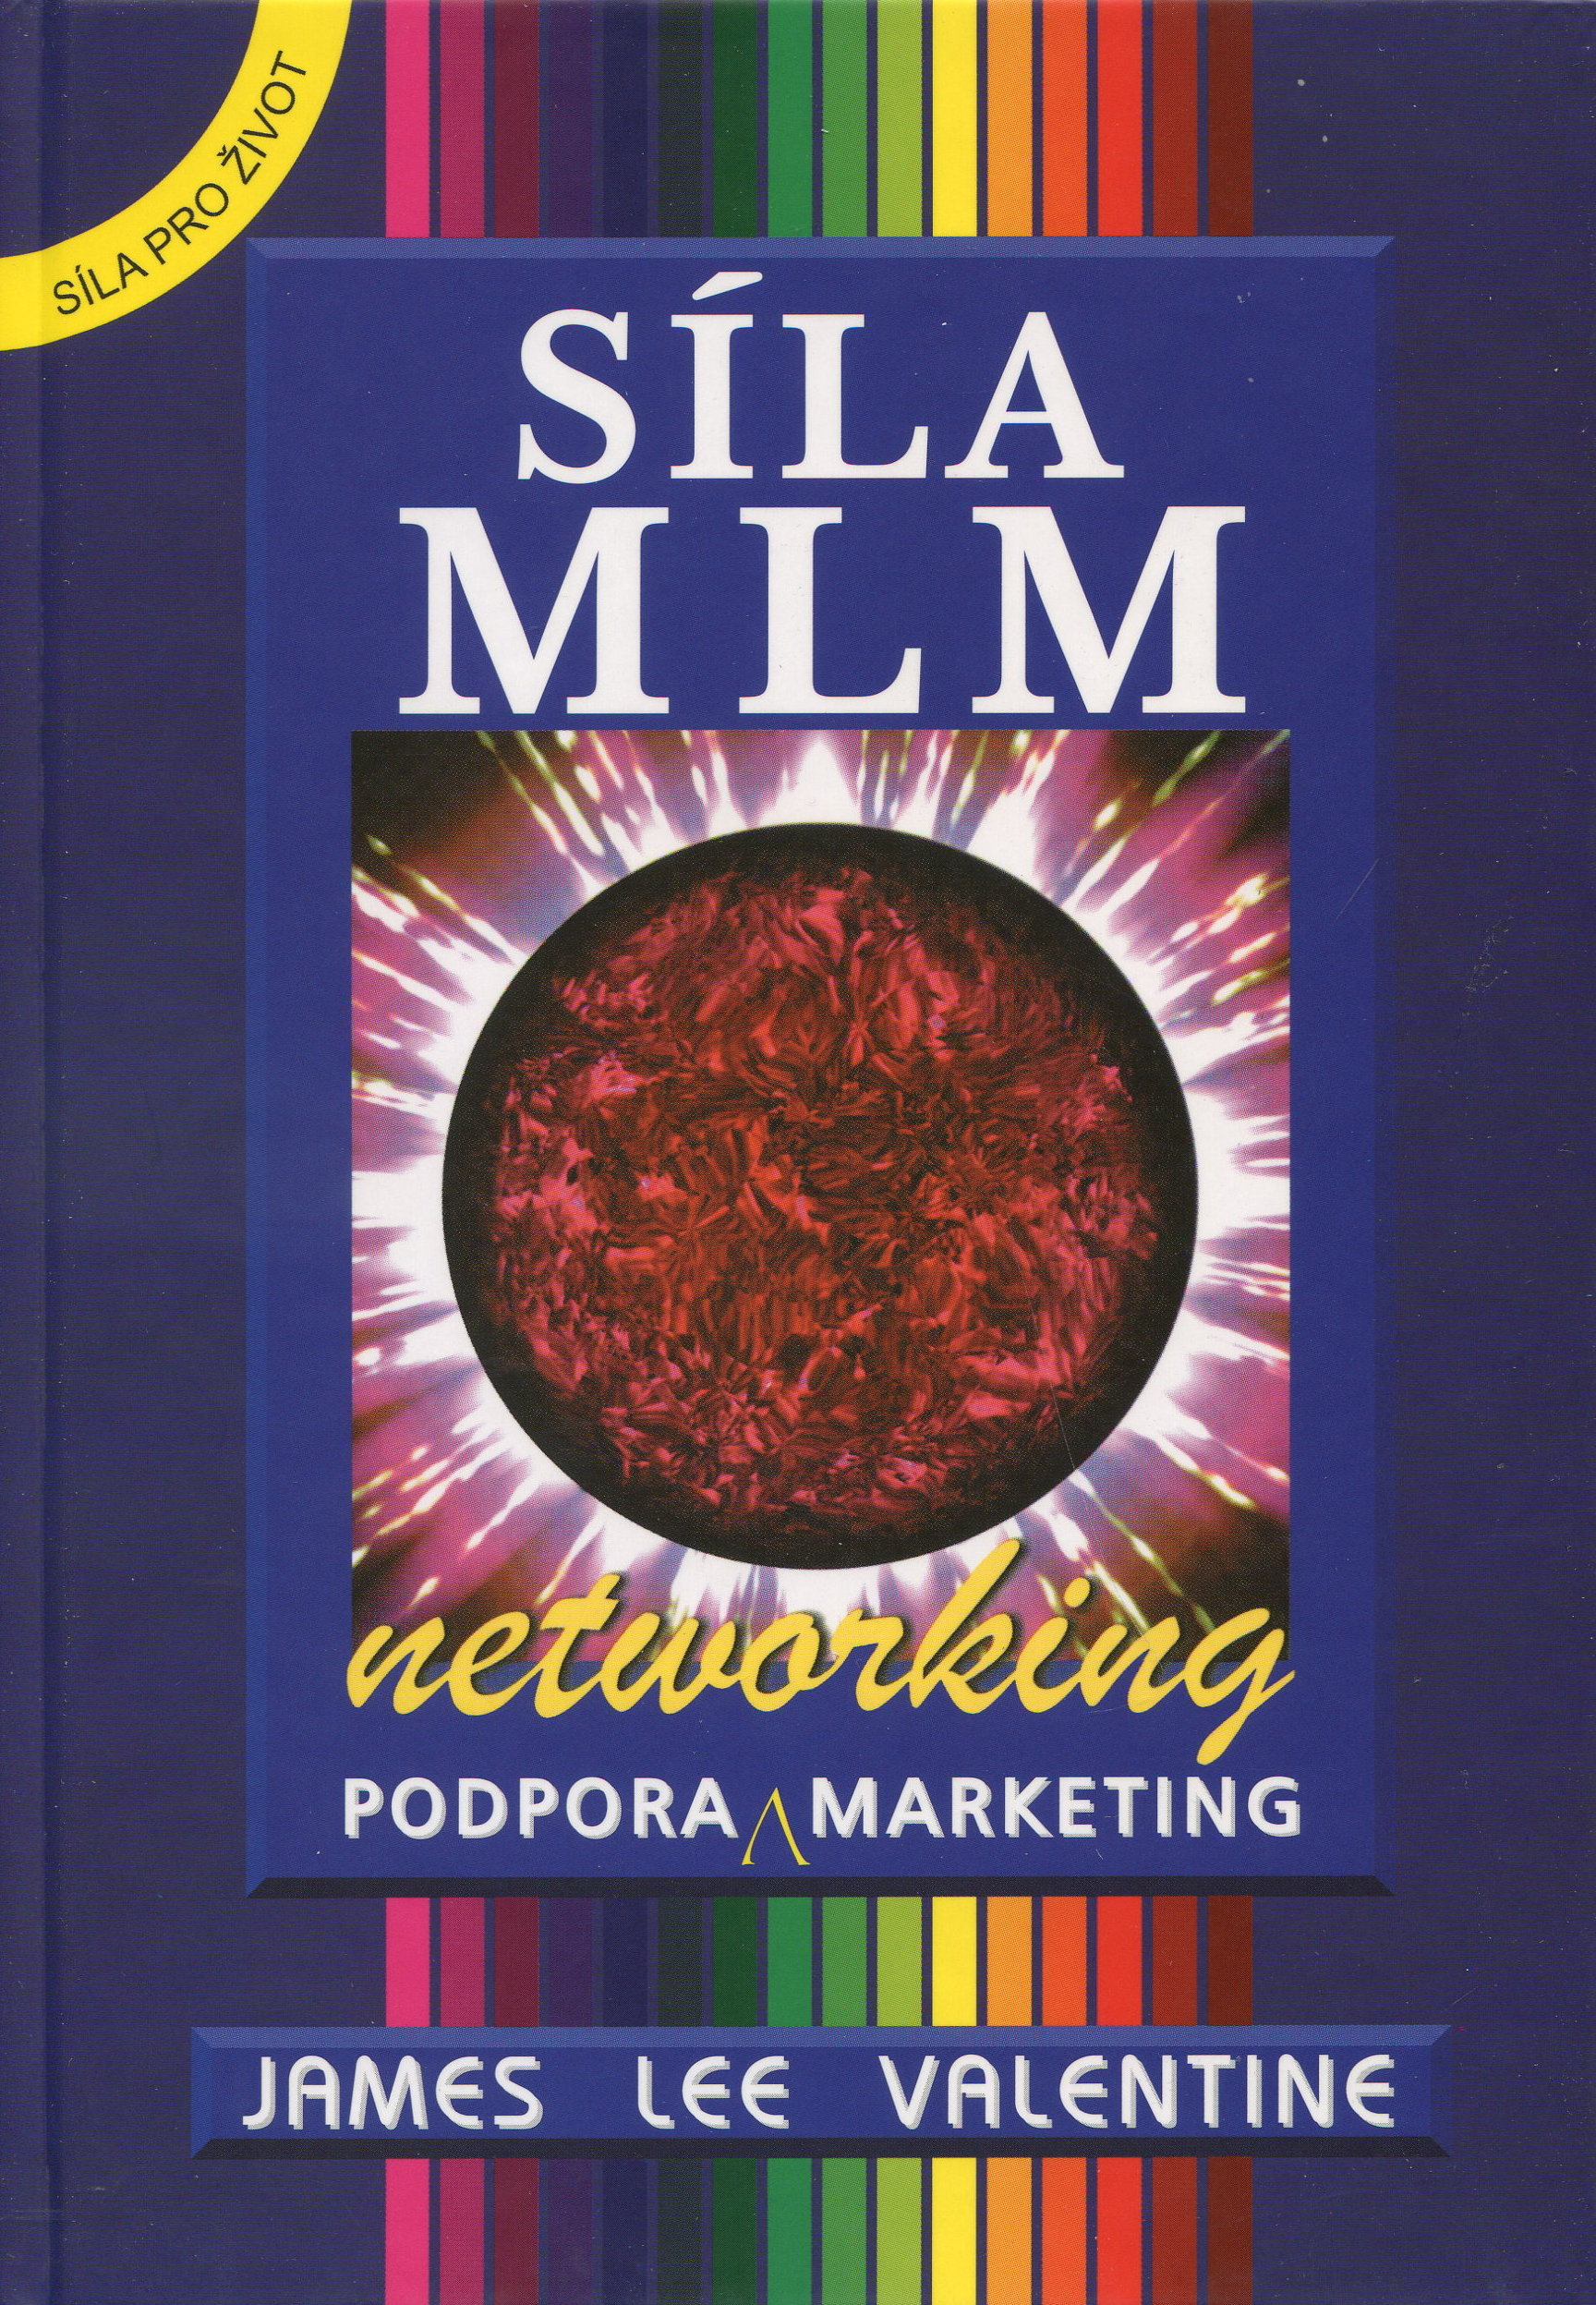 Síla MLM - Networking: podpora - marketing